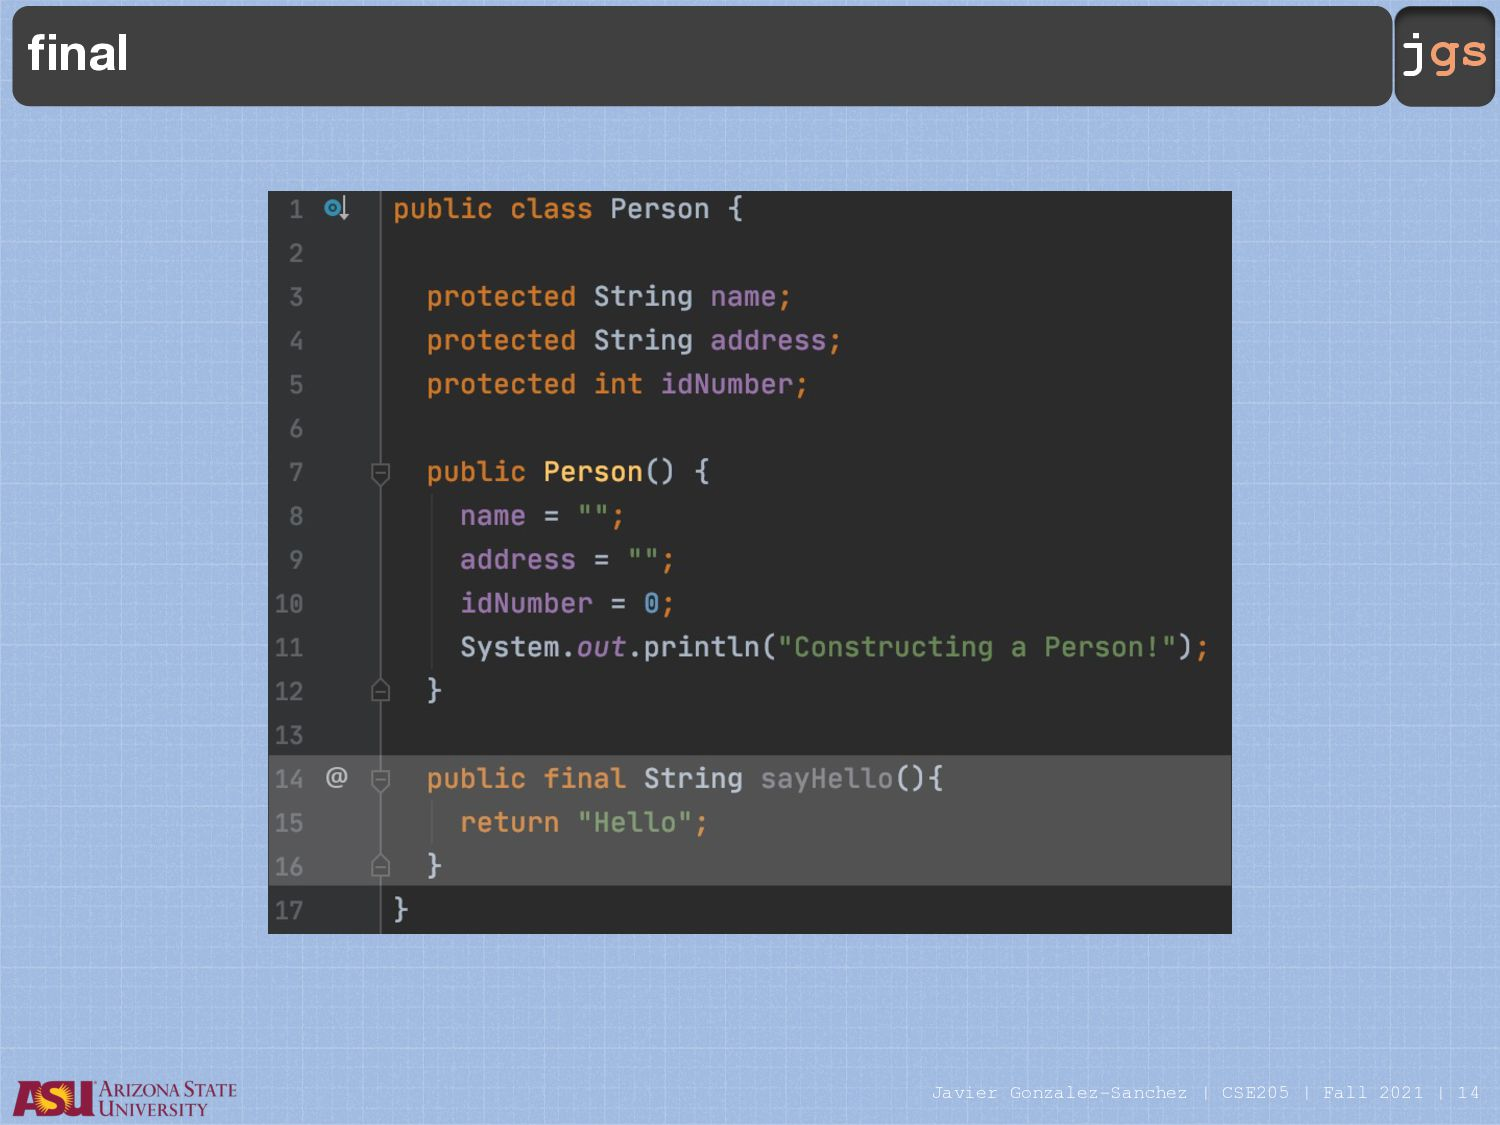 jgs Notes Java Programming for Assignment 01 )